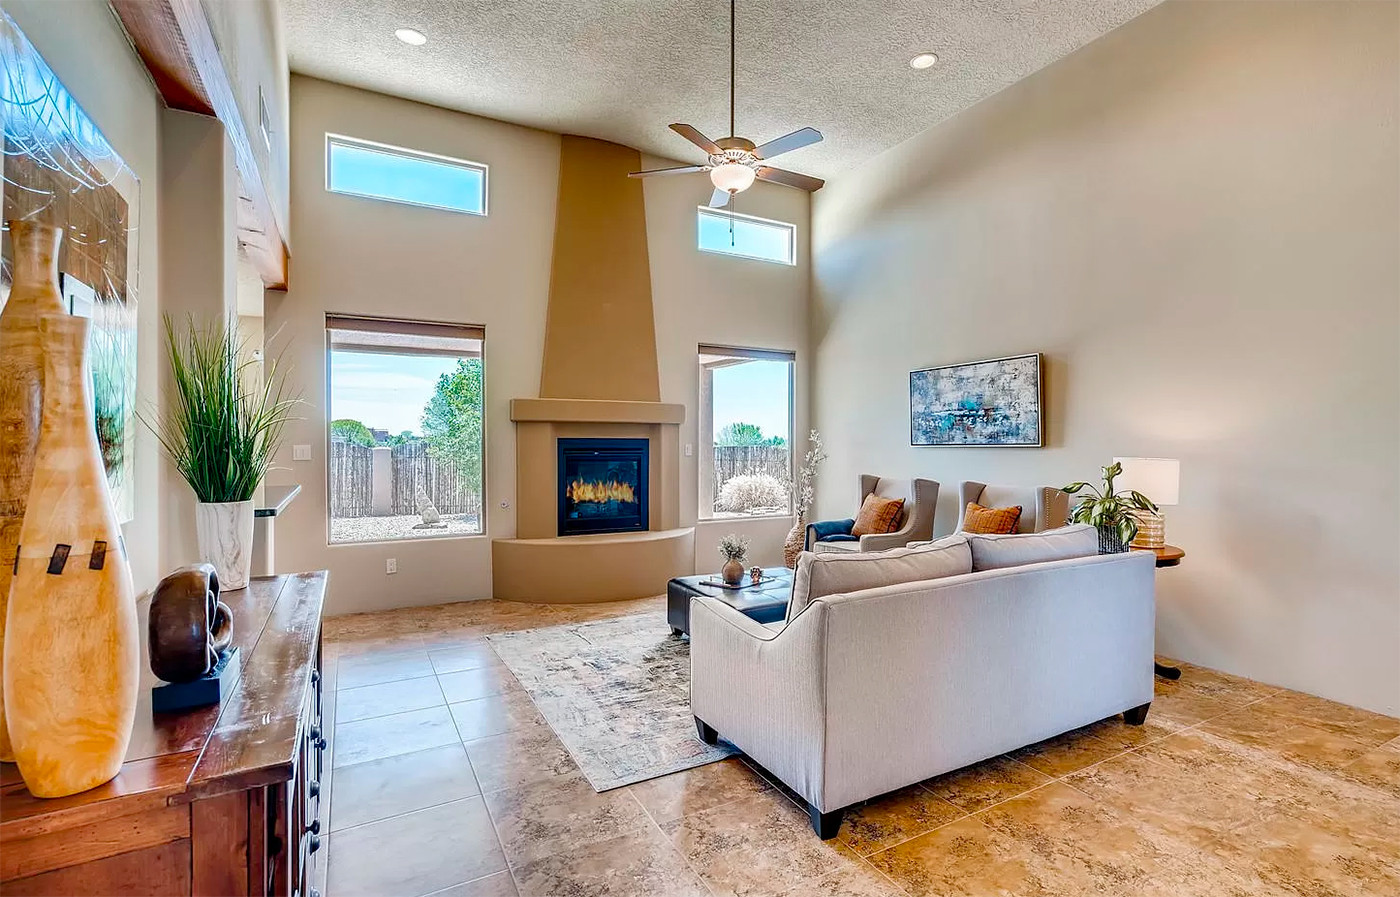 Canto Del Pajaro | Home Staging to Emphasize Cathedral Ceilings and Fireplace